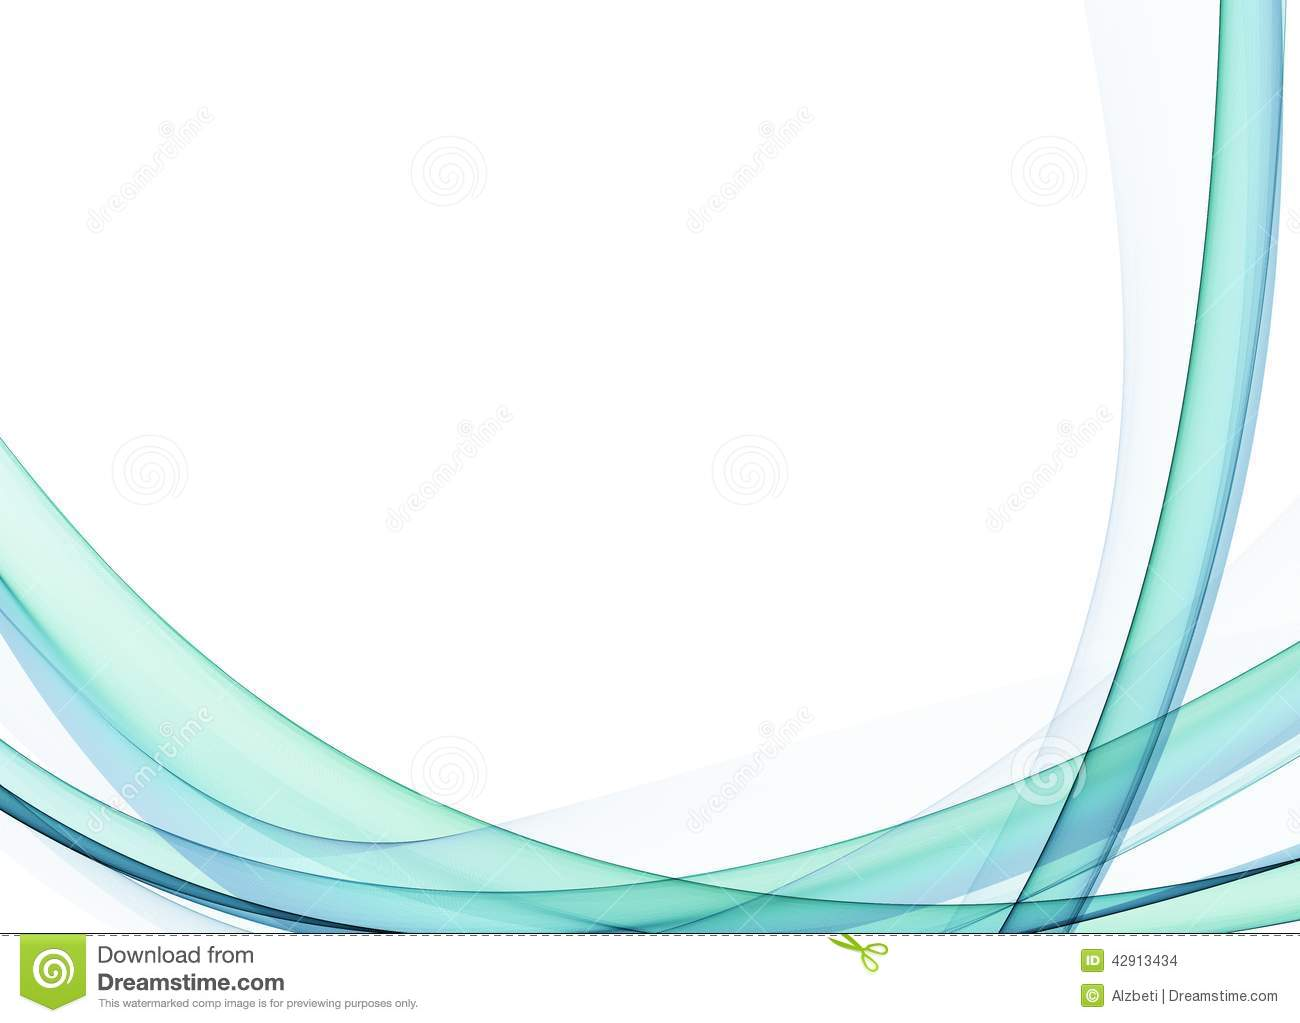 simple abstract background stock illustration - image: 42913434